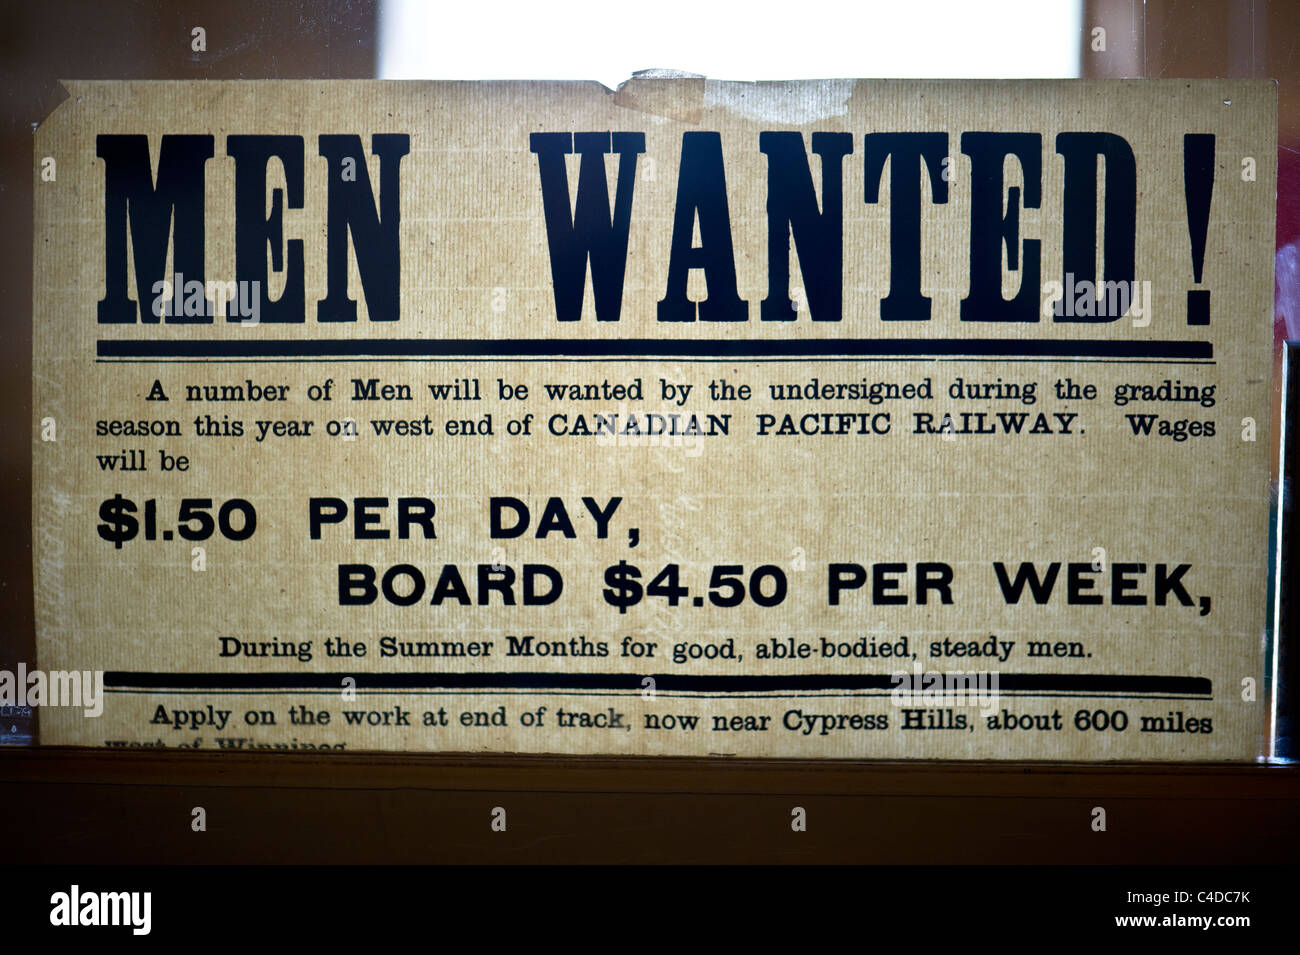 VIntage Men Wanted sign for Canadian Pacific Railway, circa 1887 - Stock Image